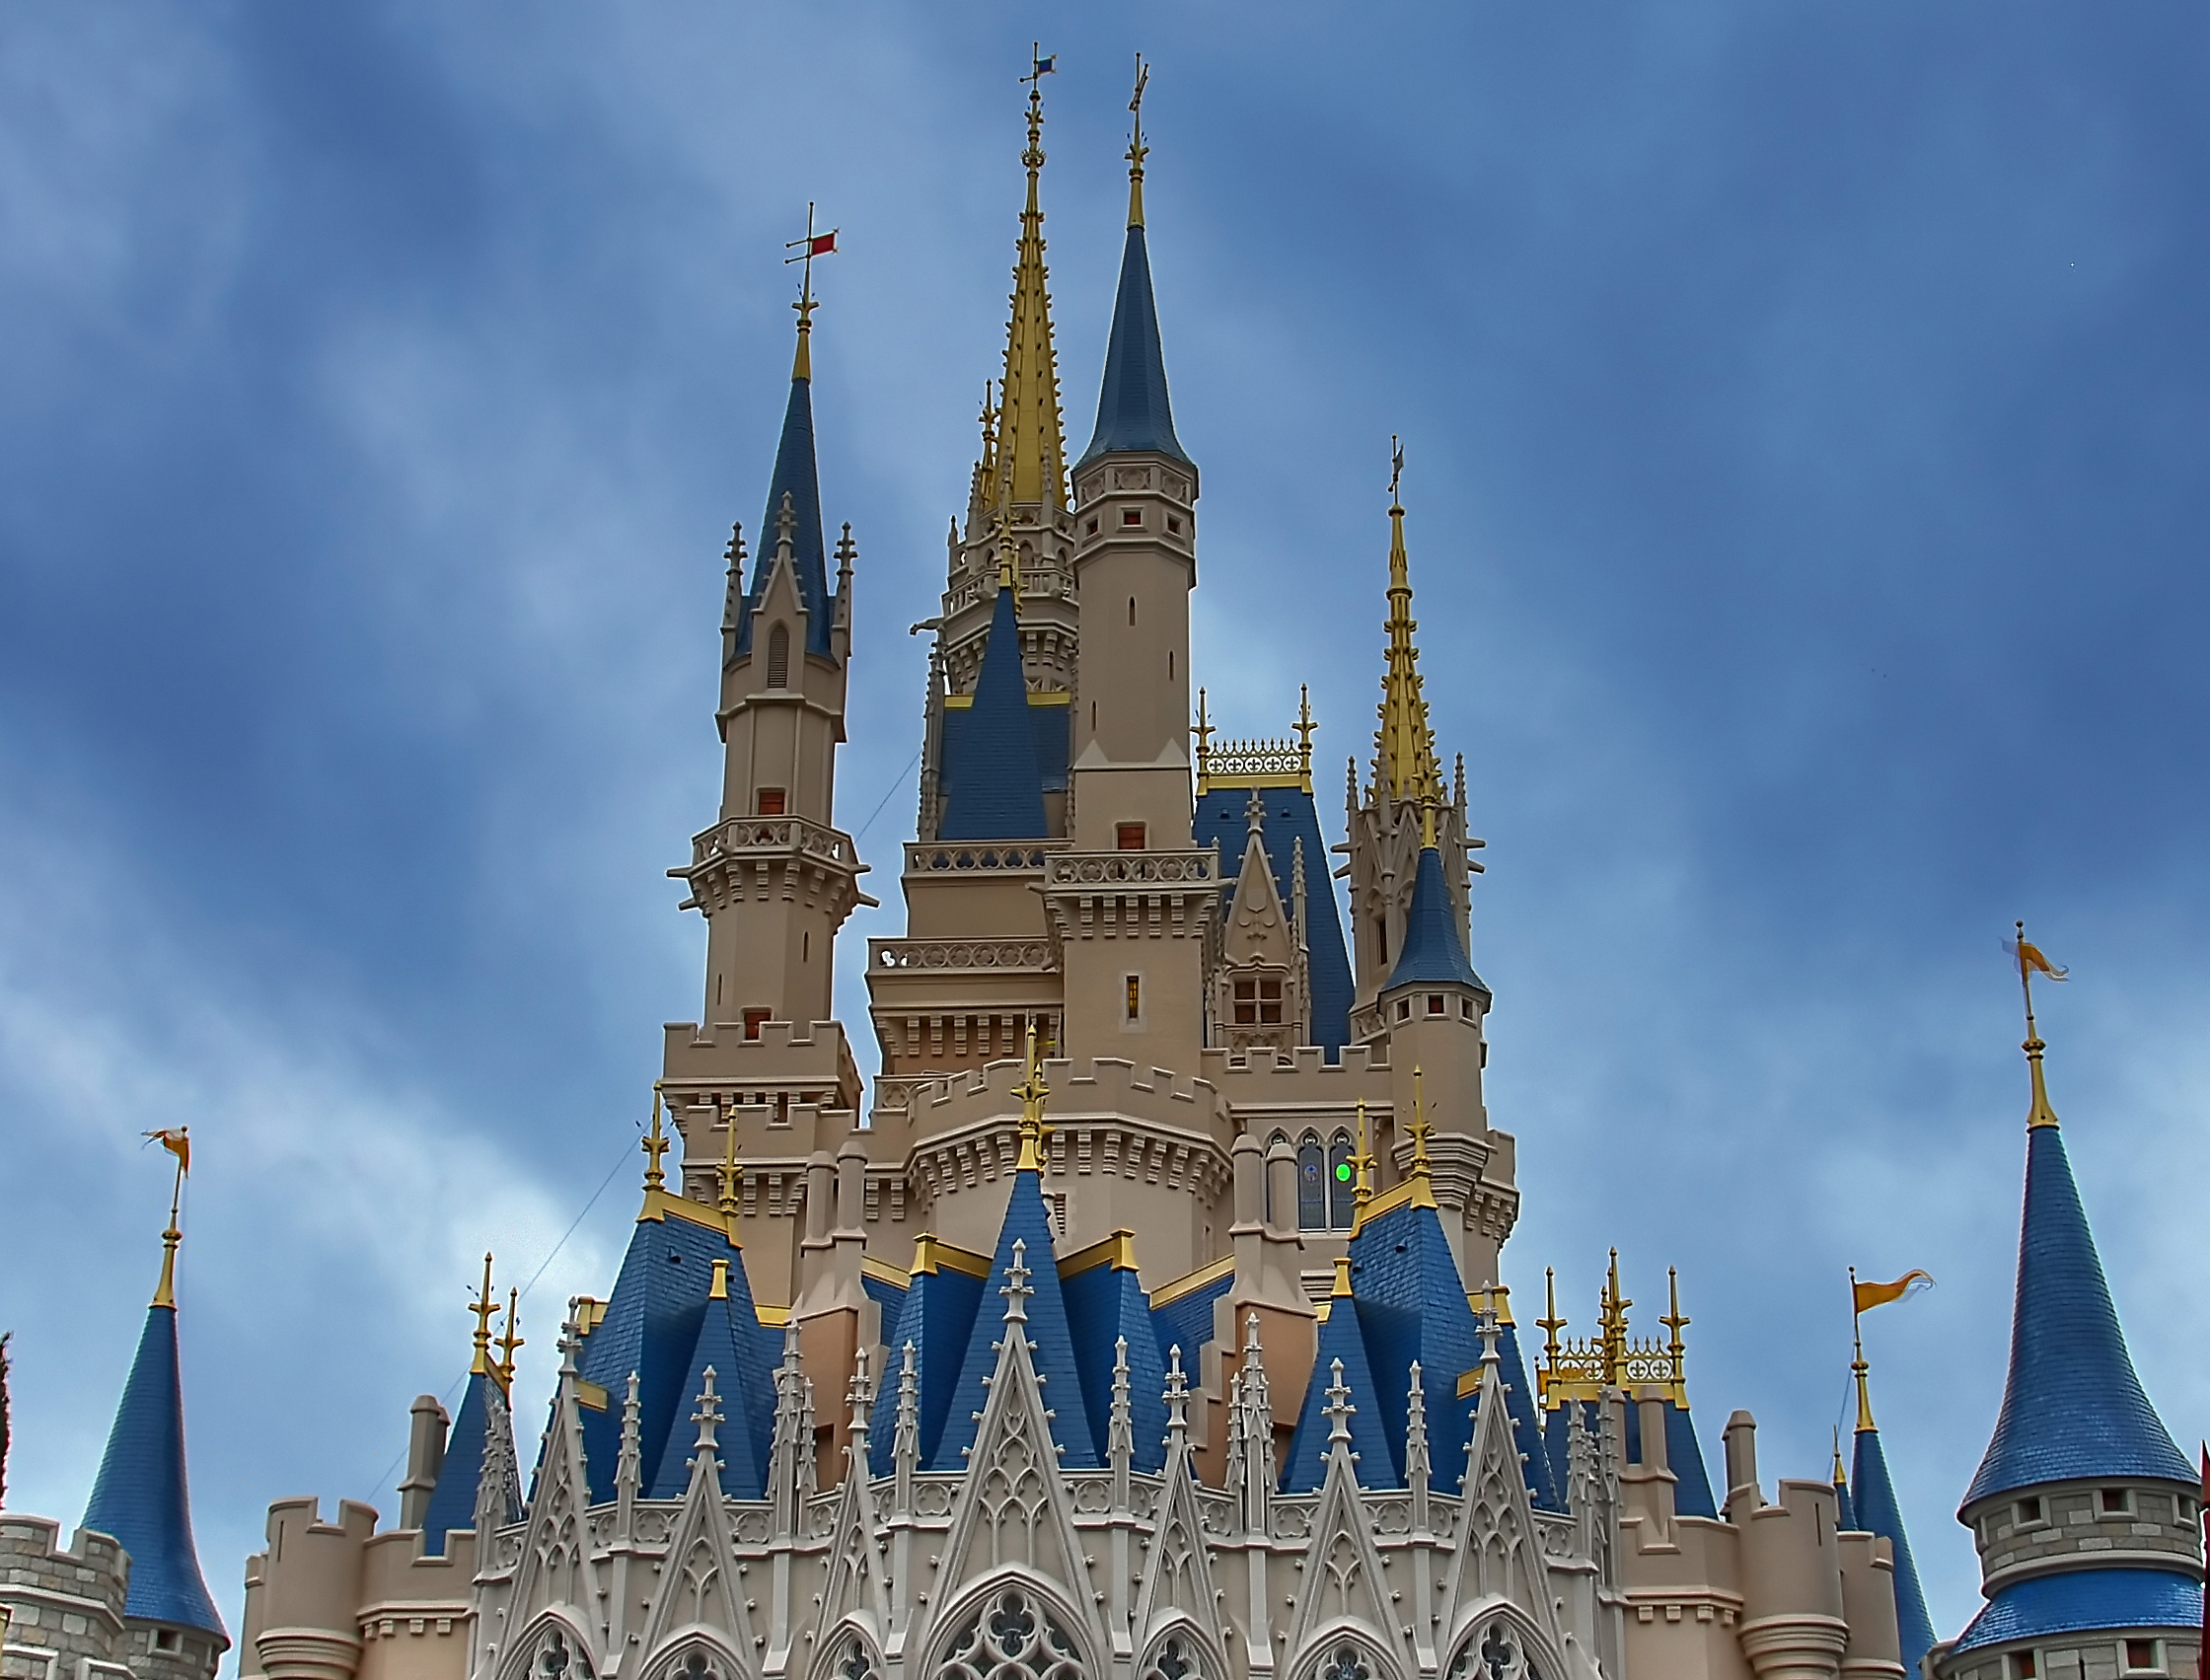 Florida, U.S.A., Towers of Cinderella Castle at Walt Disney World